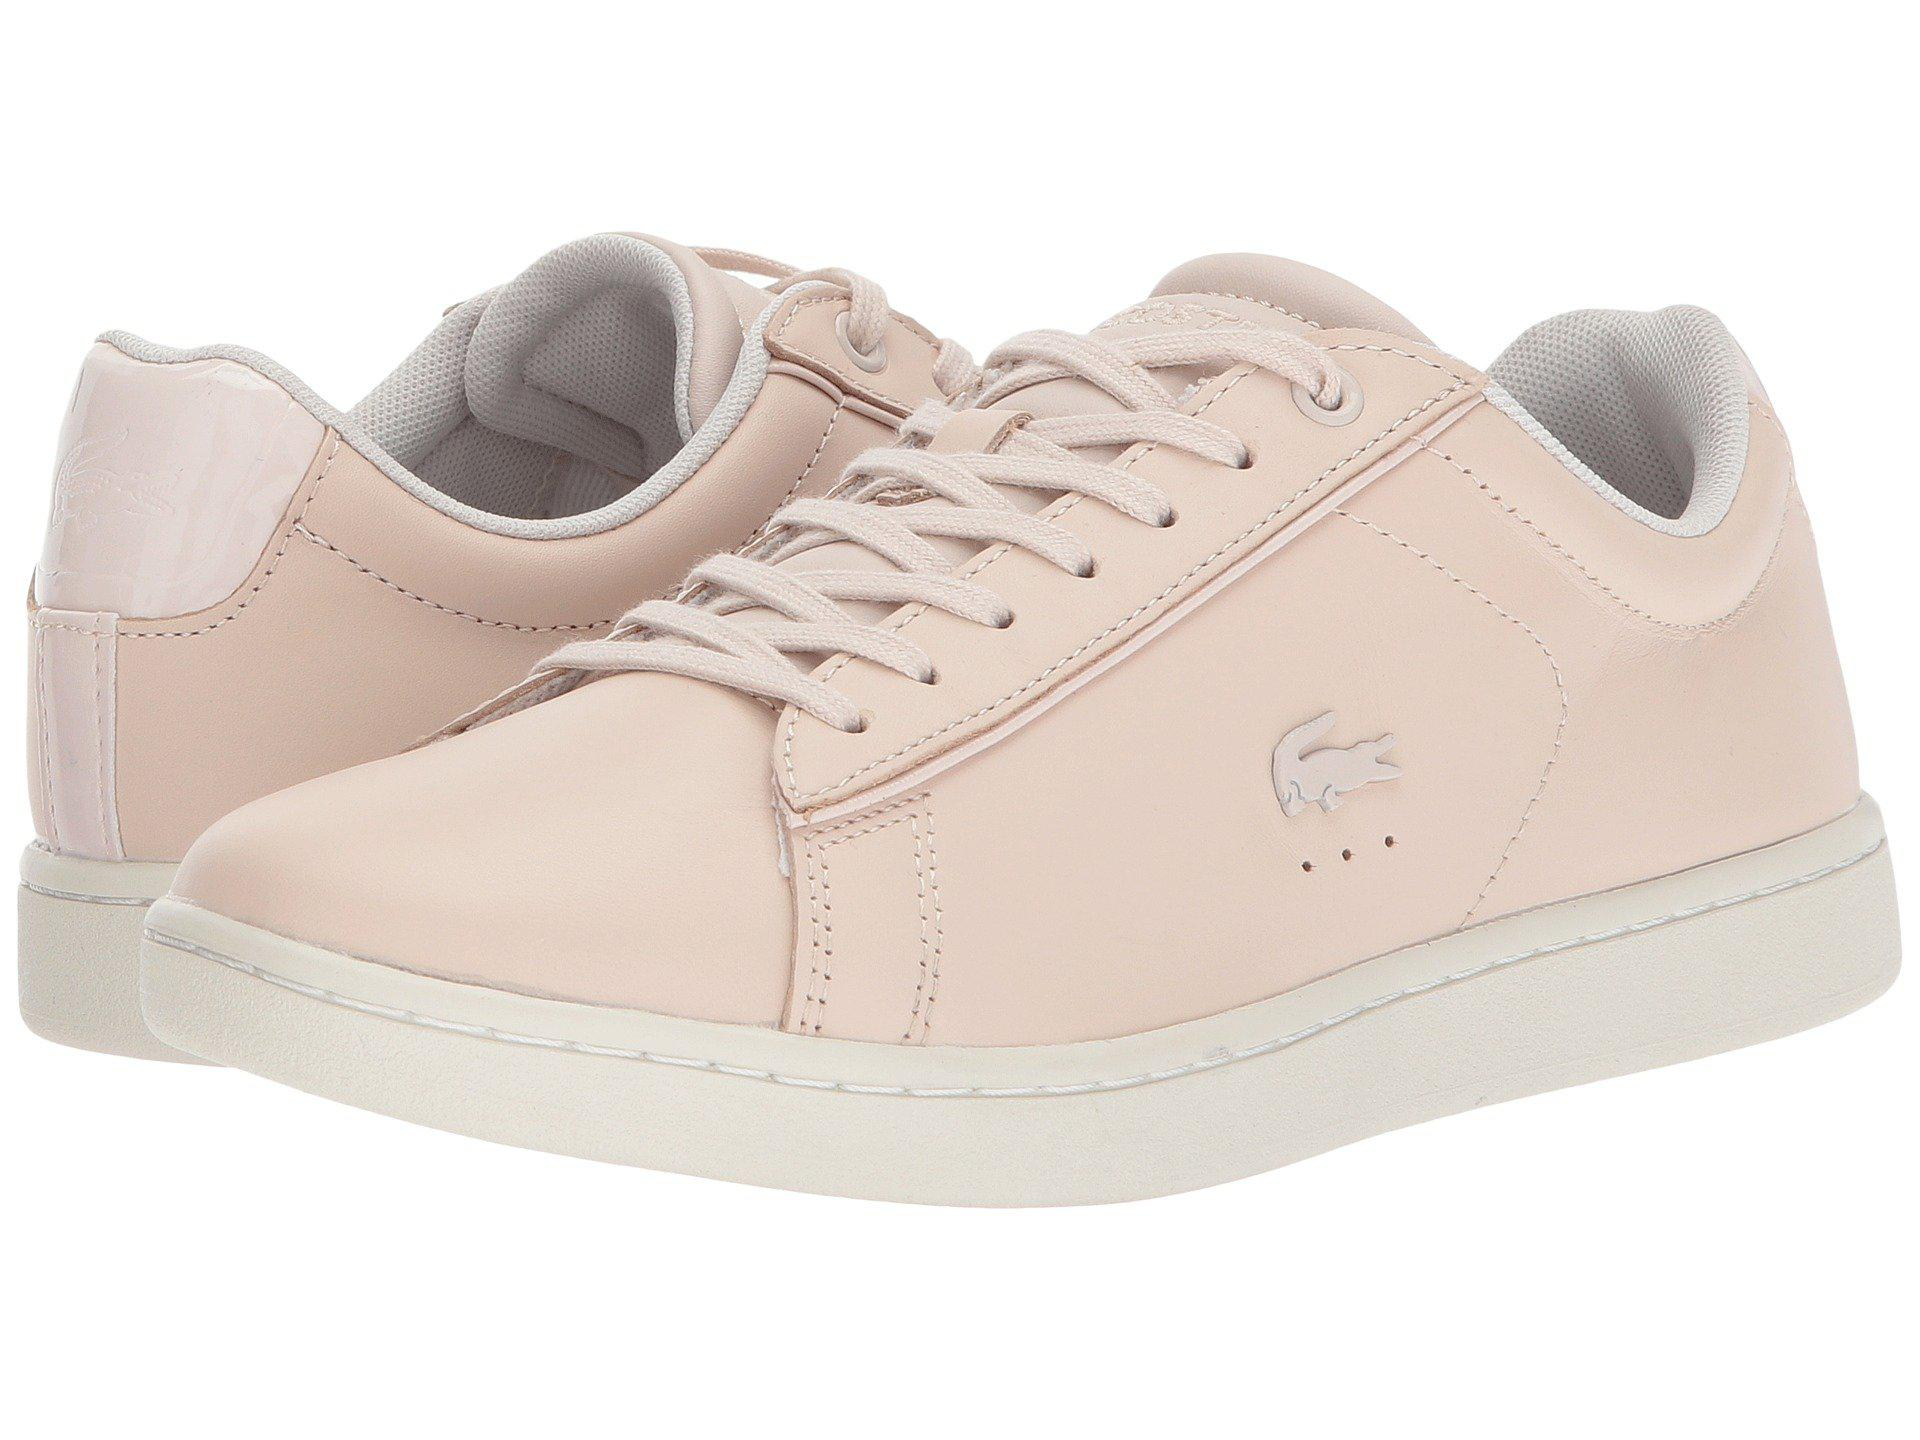 98fdd1cea340a Lyst - Lacoste Carnaby Evo 417 1 in Pink